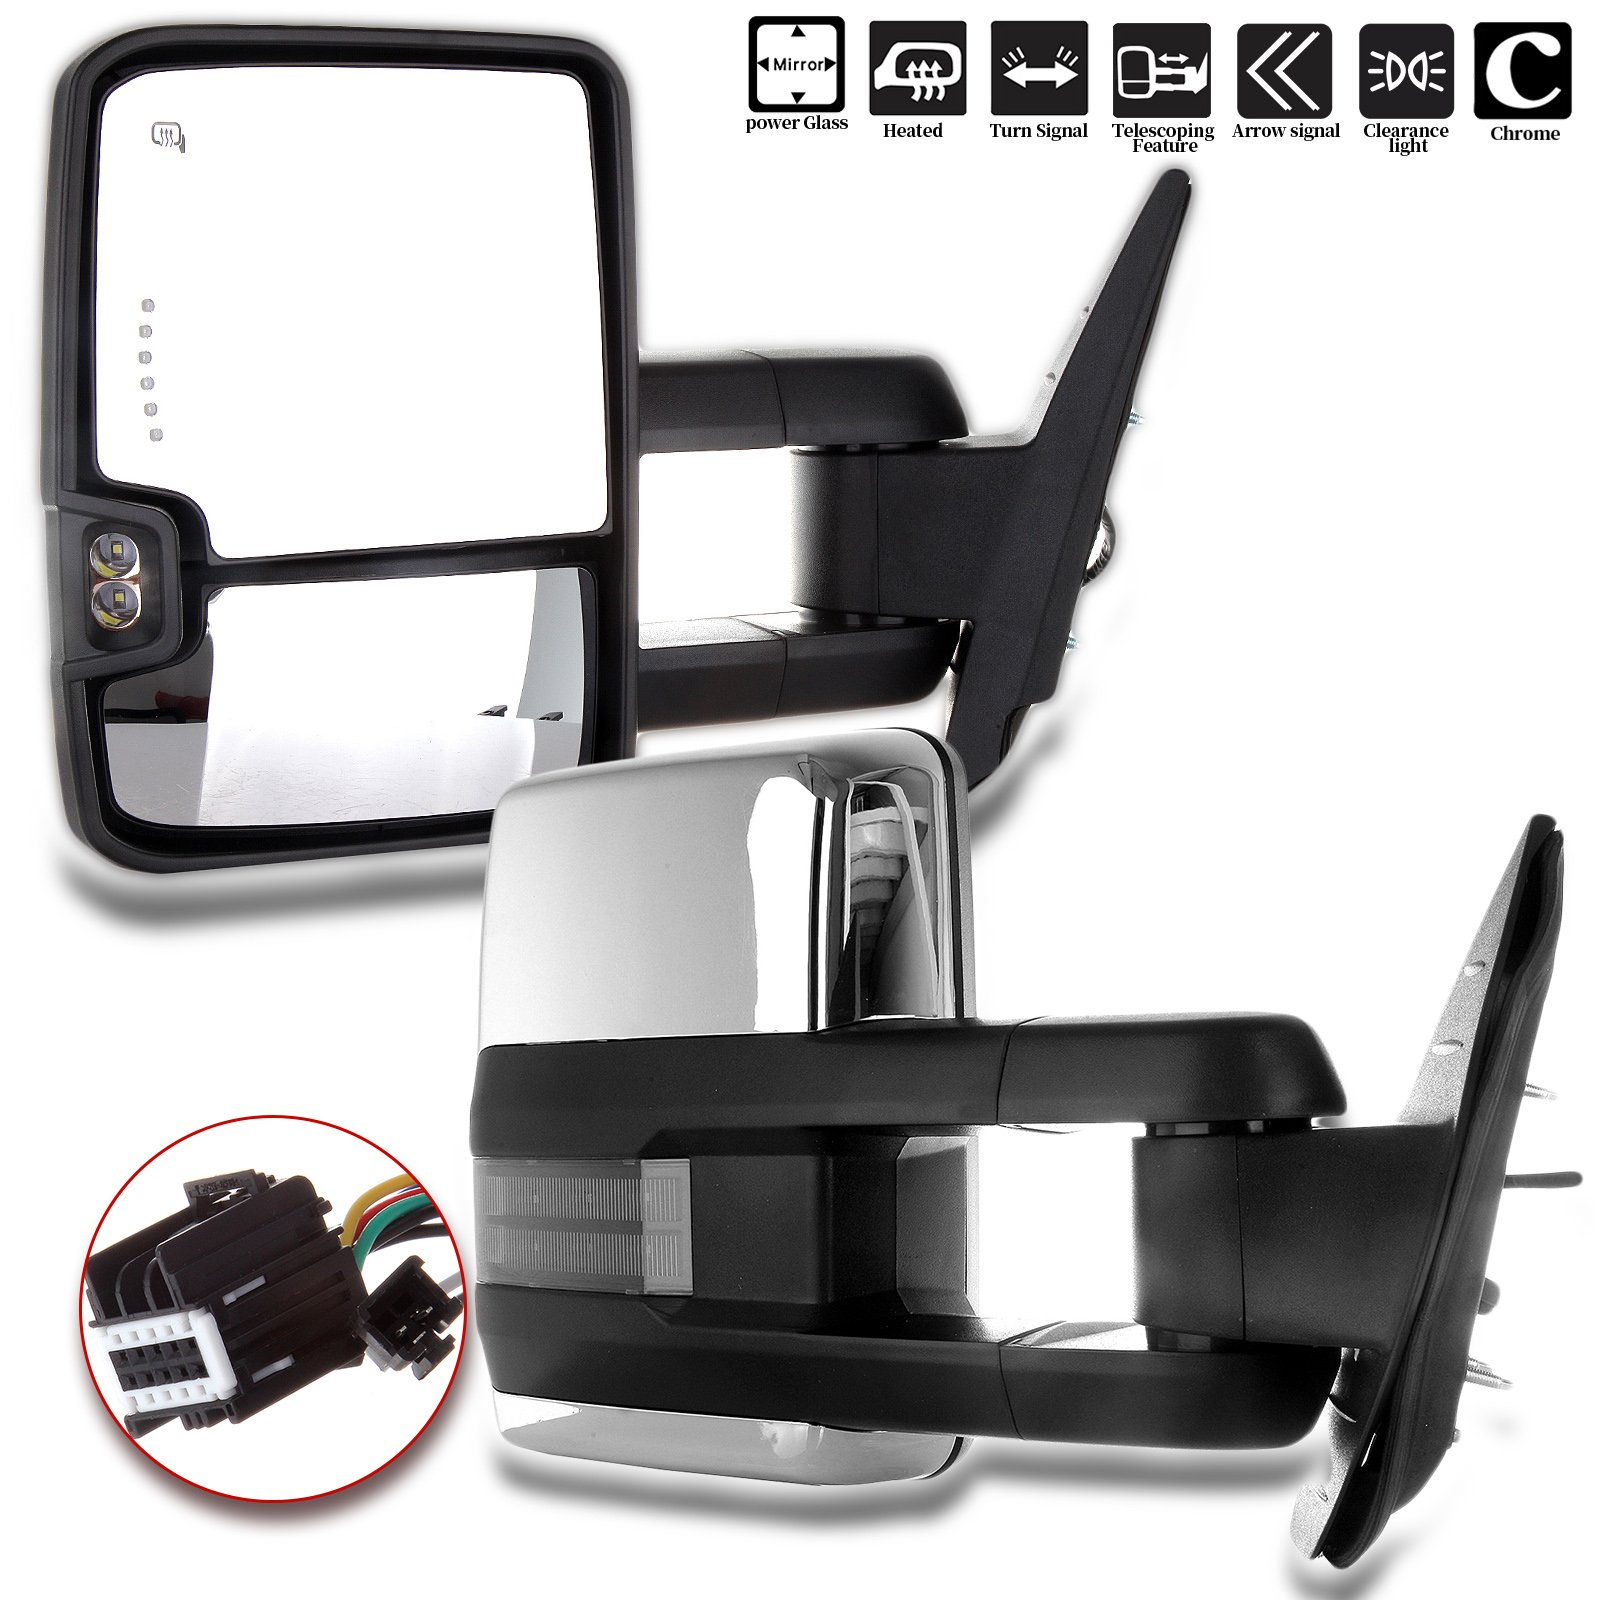 ECCPP fit Chevy Towing Mirrors, GMC Power Heated LED Turn Arrow Signal Lights Reverse Lights Tow Mirrors, for 2008-2013 Chevy Silverado GMC Sierra All Models, 2007 Silverado Sierra New Body Style by ECCPP